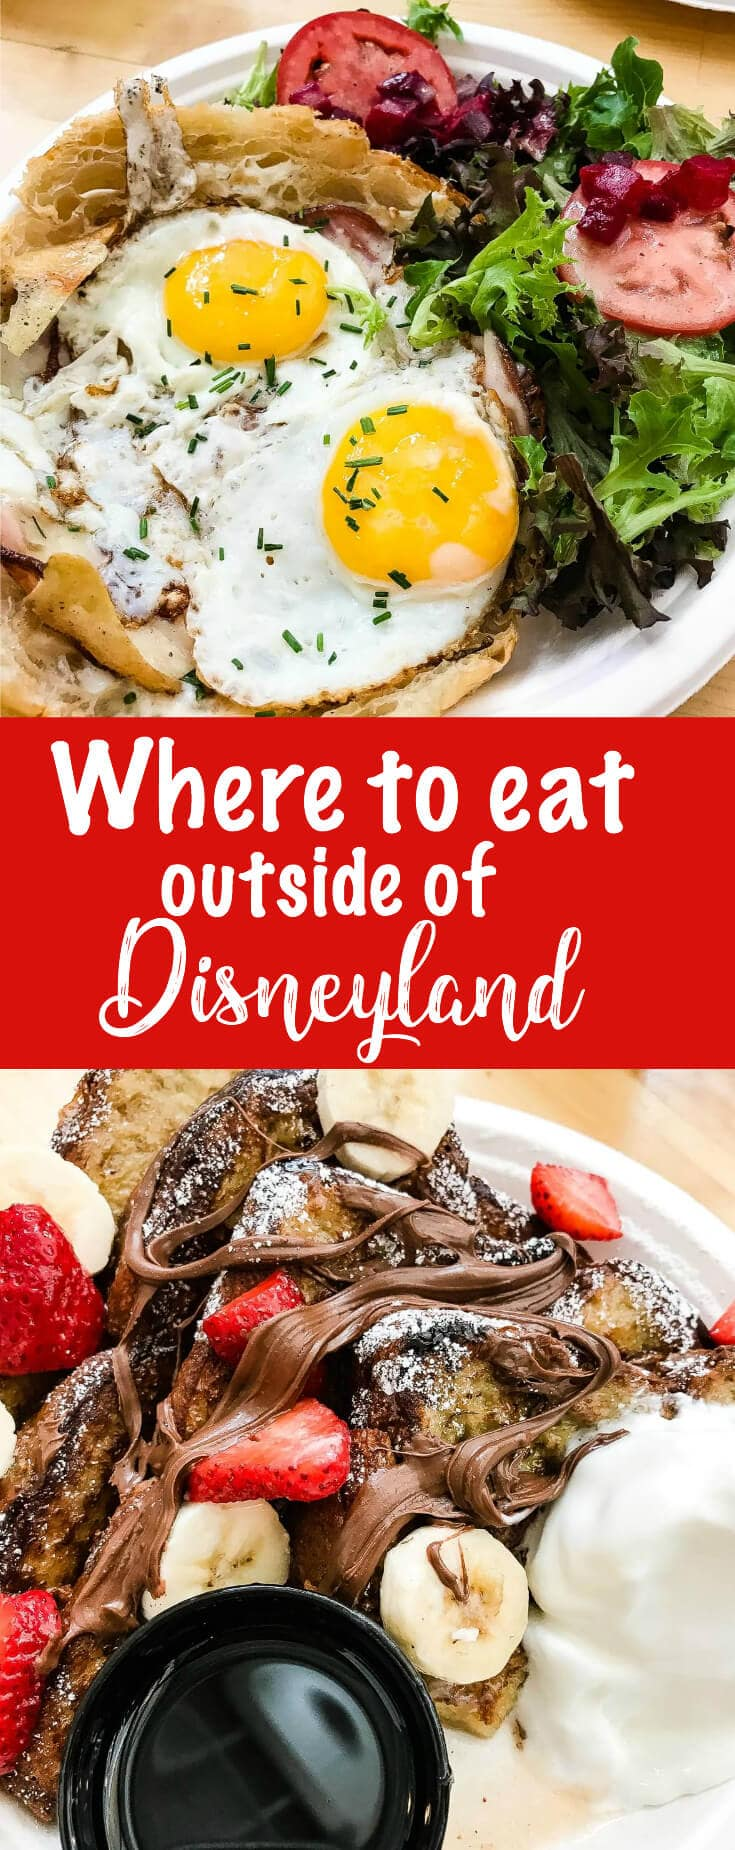 t's here!! Your trip to Disneyland has begun and you can't wait to get to the park, but suddenly you realize you don't know where to eat outside of Disneyland!